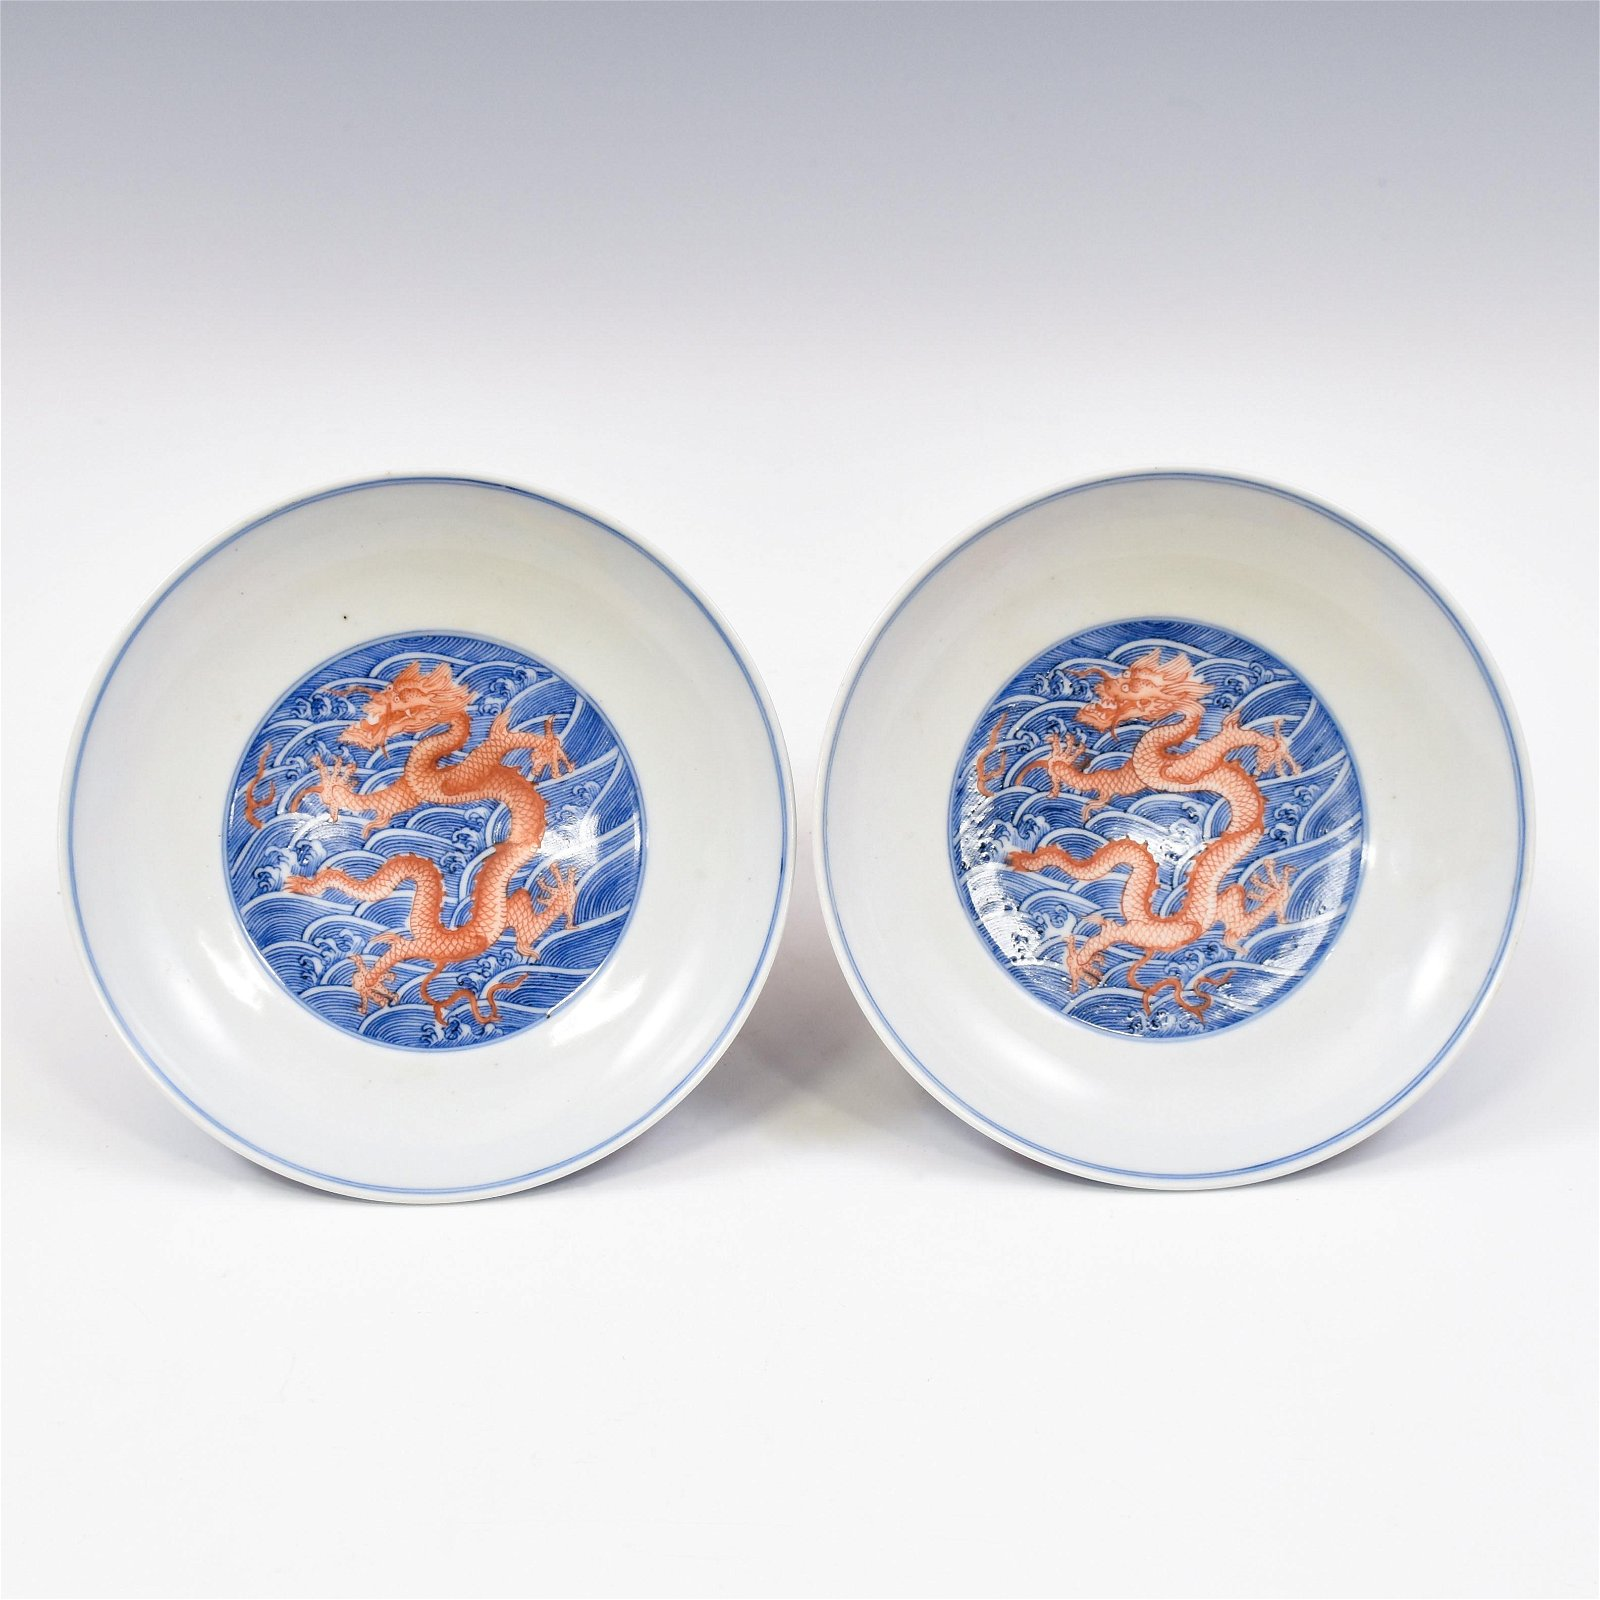 PAIR OF YONGZHENG BLUE AND RED DRAGON PLATES